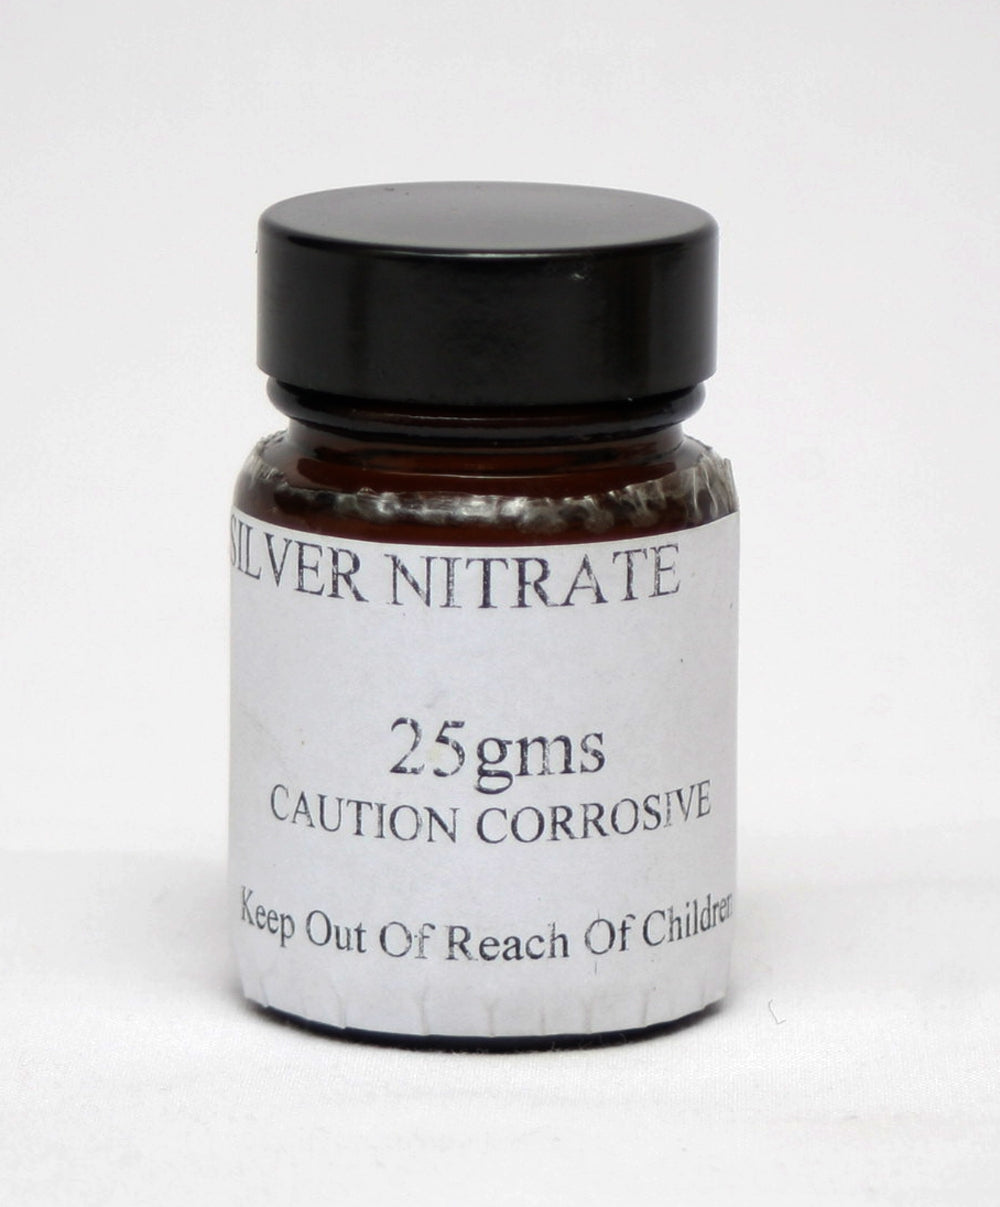 Silver Nitrate 25g